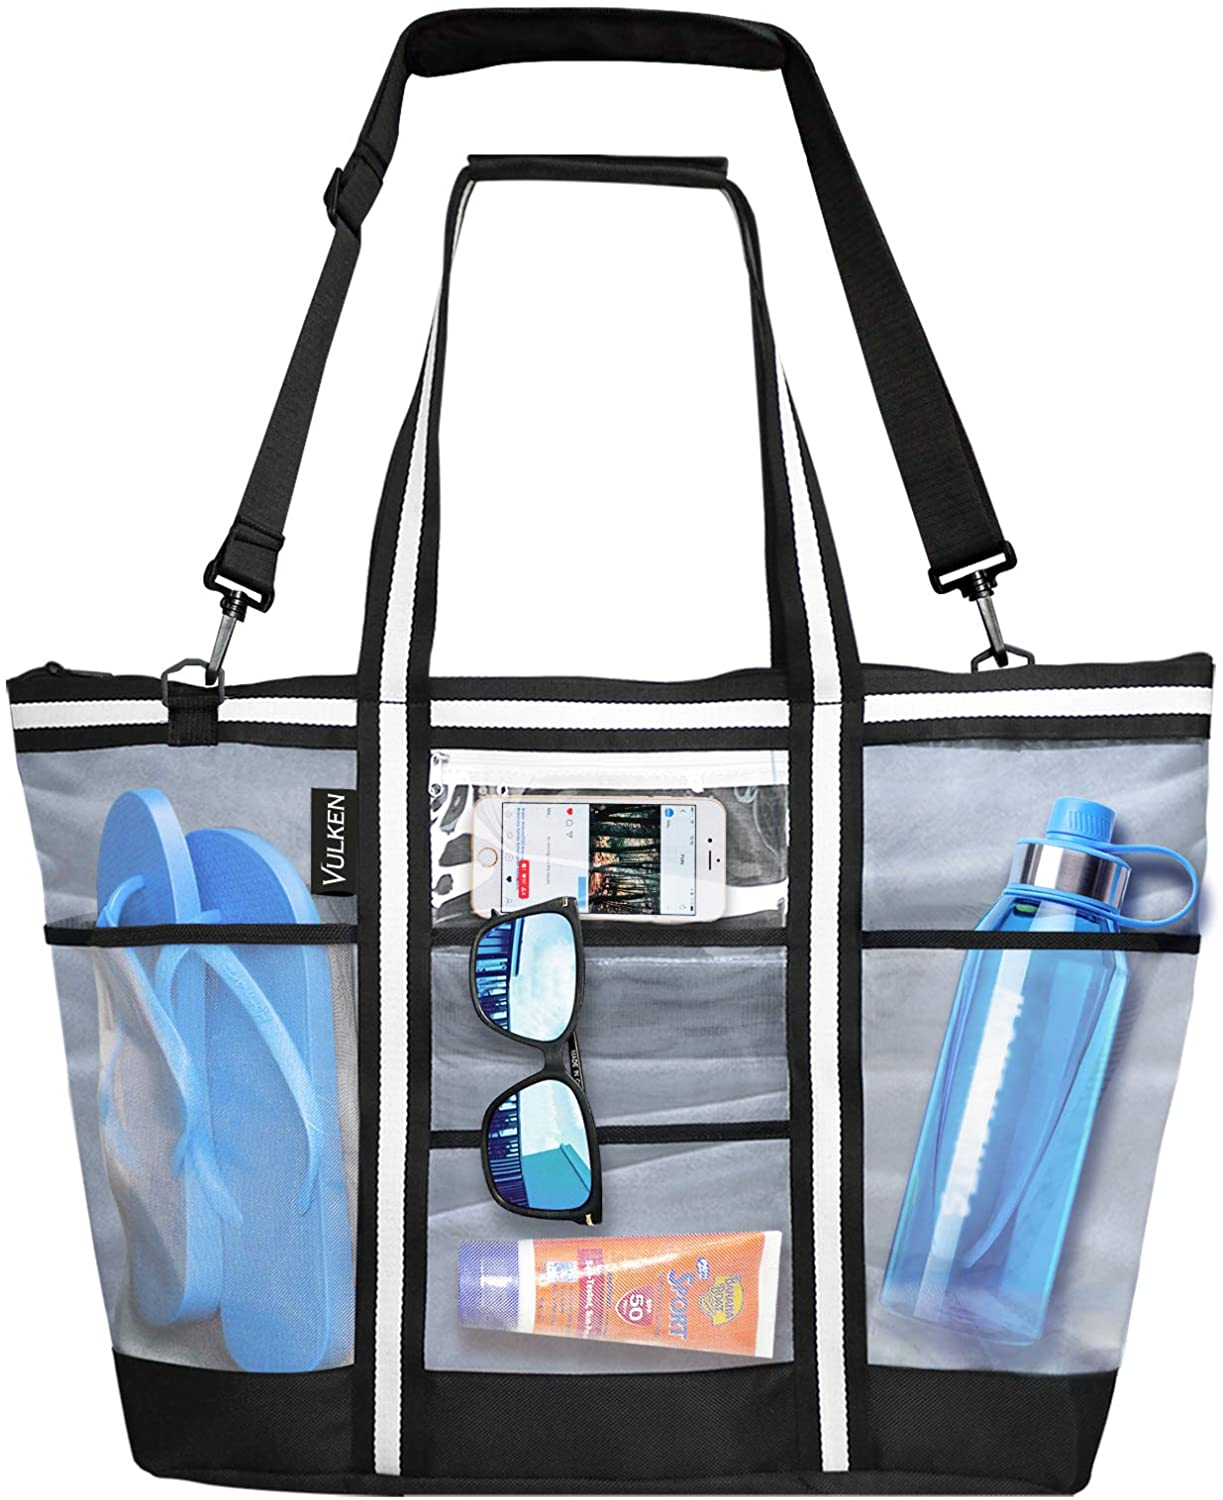 Mesh Beach Toys Bag Travel Tote Multiple Pockets Picnic Storage Pouch Novelty